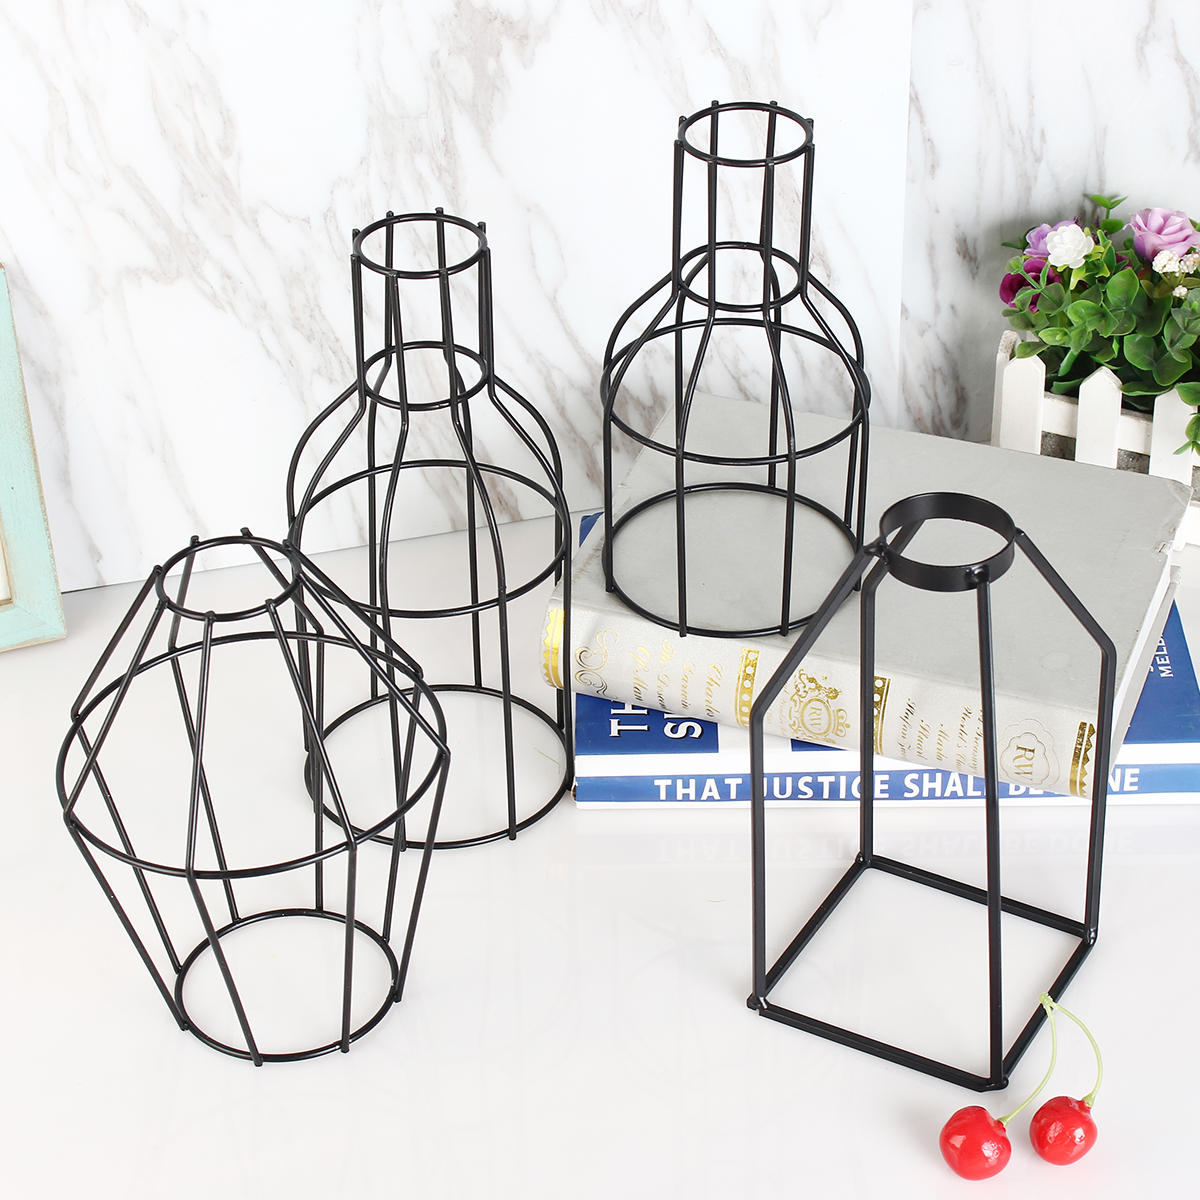 Retro Flower Stand Chic Indoor Garden Metal Plant Holder Display Planter Vase - 3